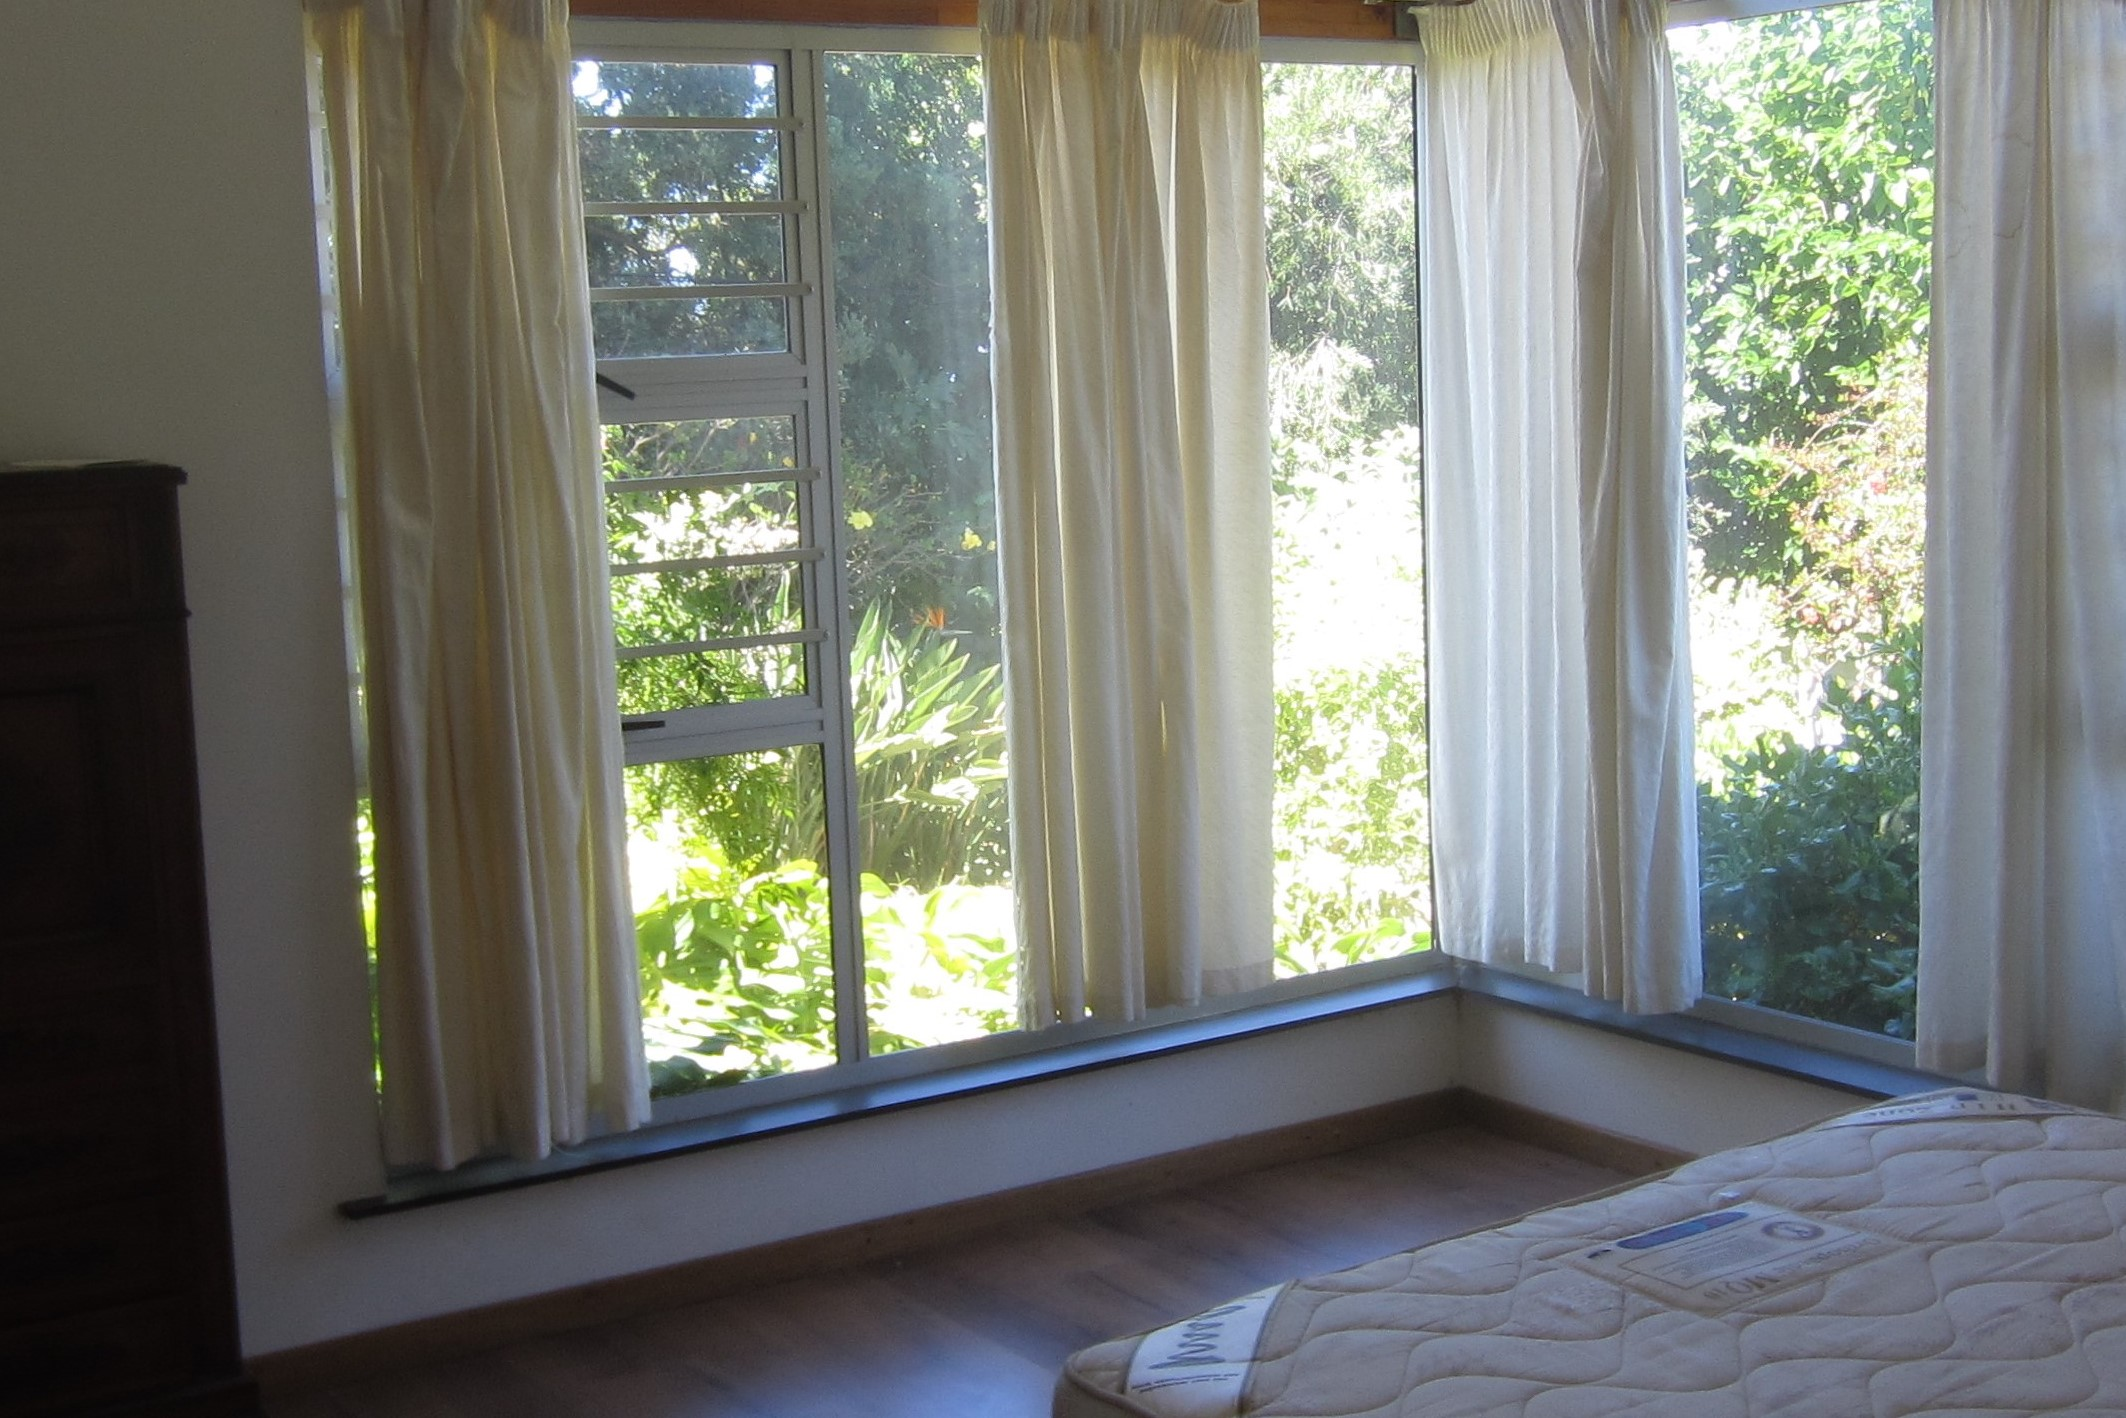 3 Bedroom House for sale in Monte Sereno ENT0015864 : photo#10